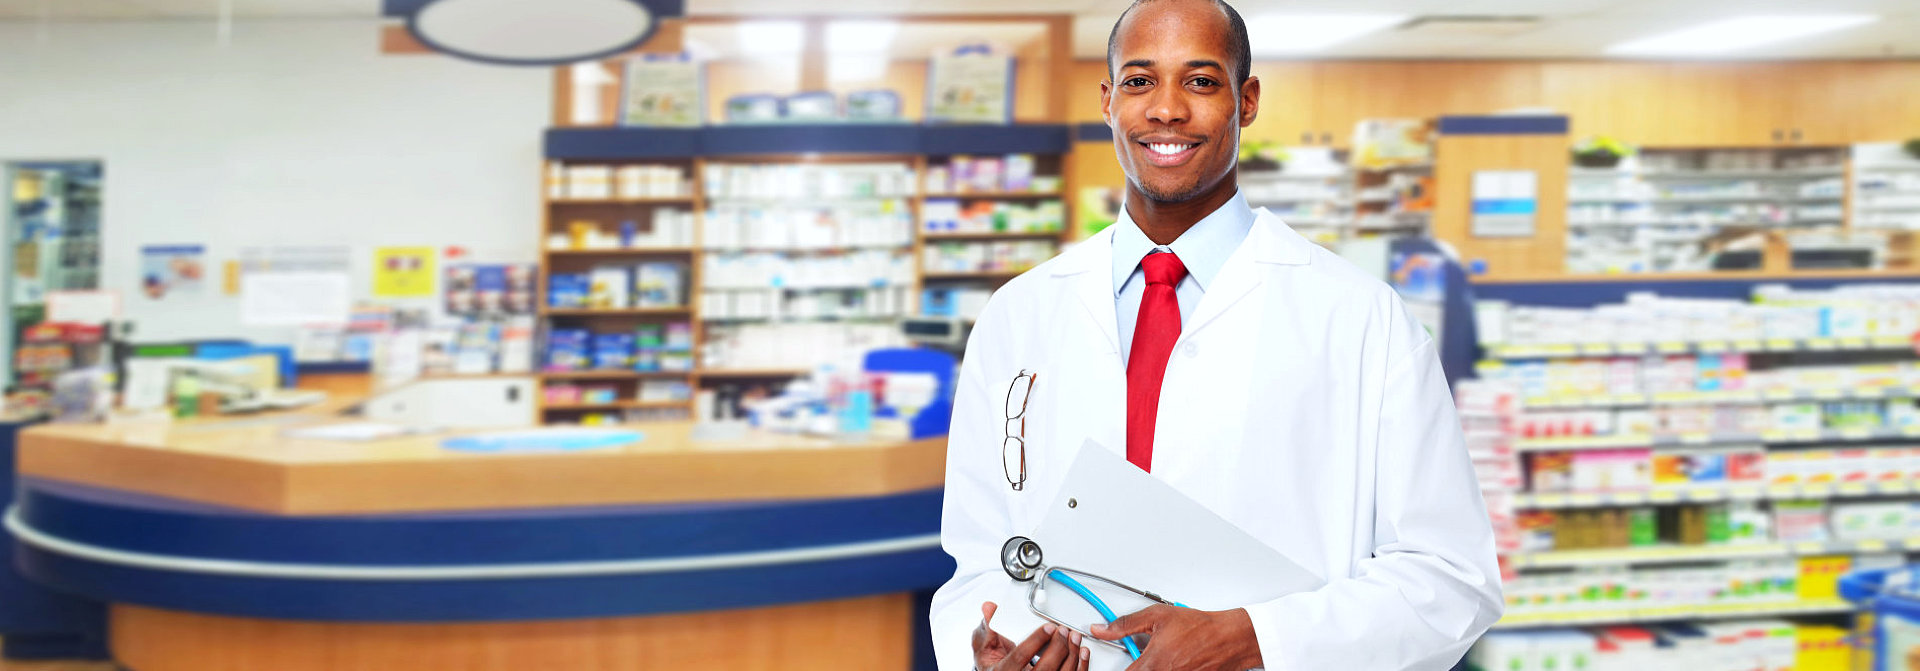 male pharmacist holding his clipboard and stethoscope